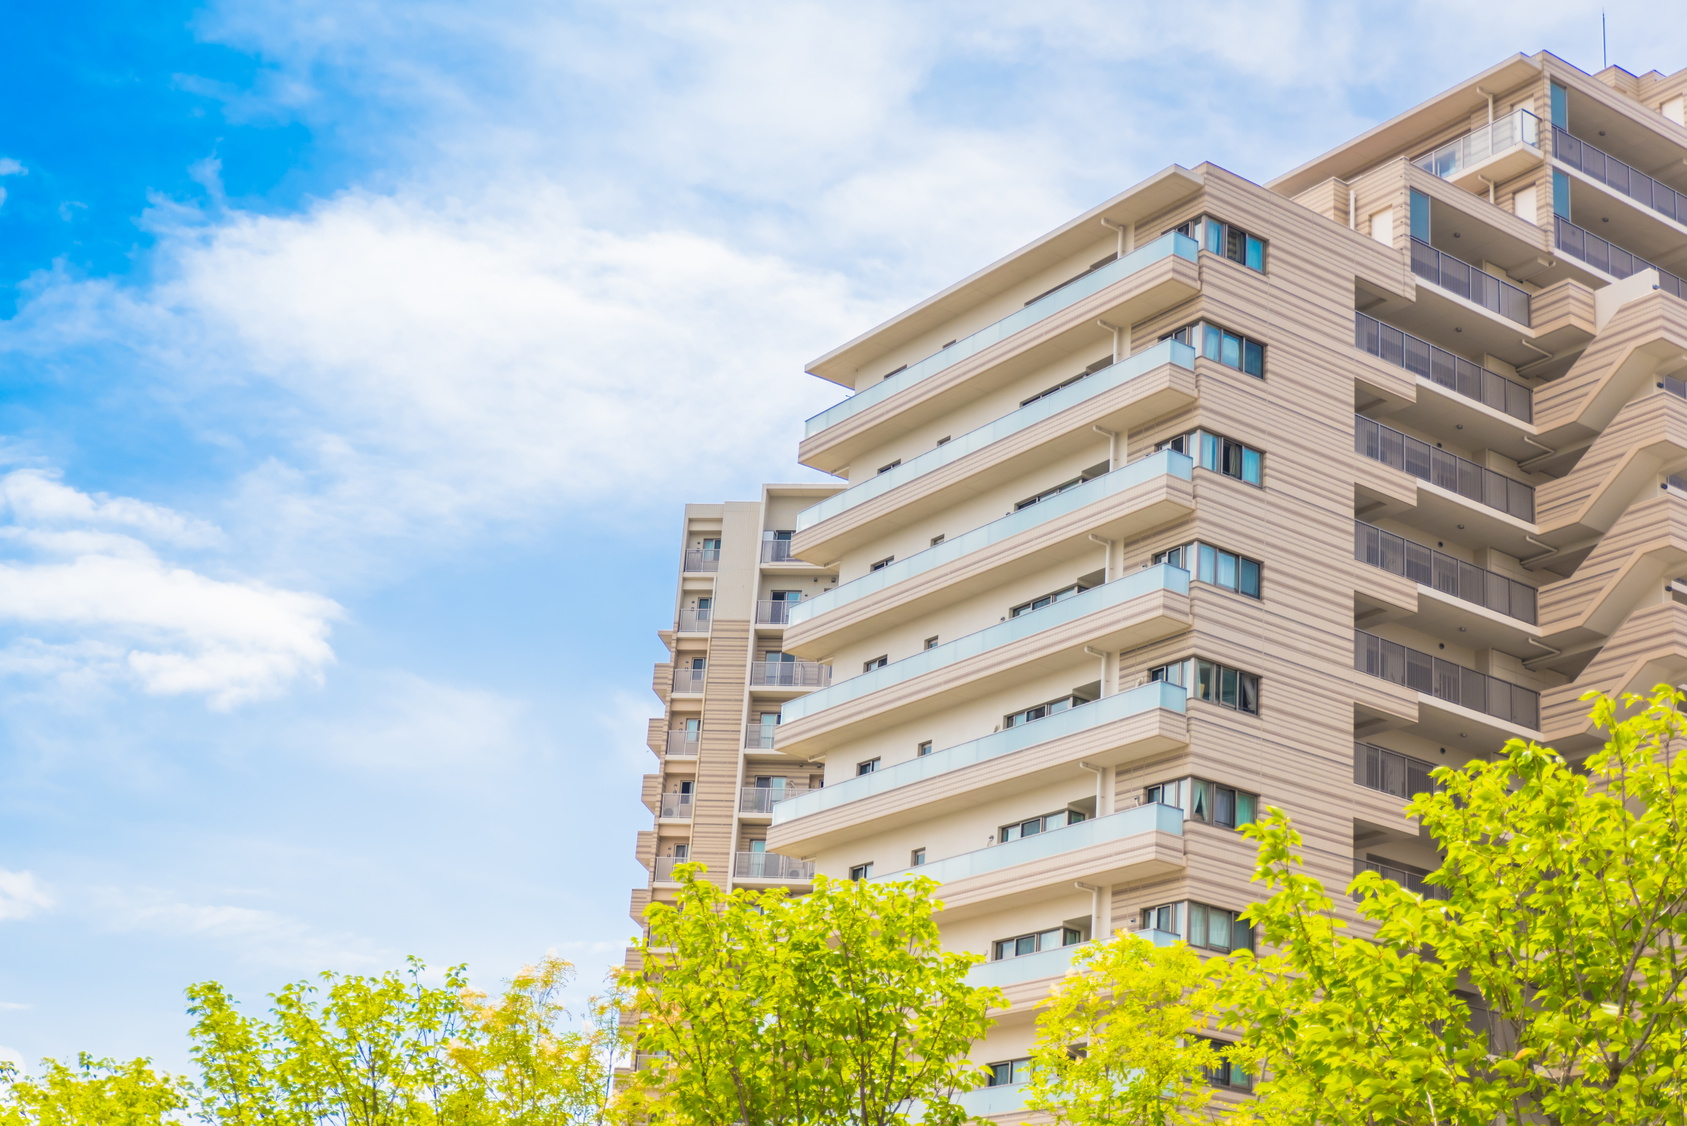 Is Buying a Single-Family Home or a Condo the Right Choice?